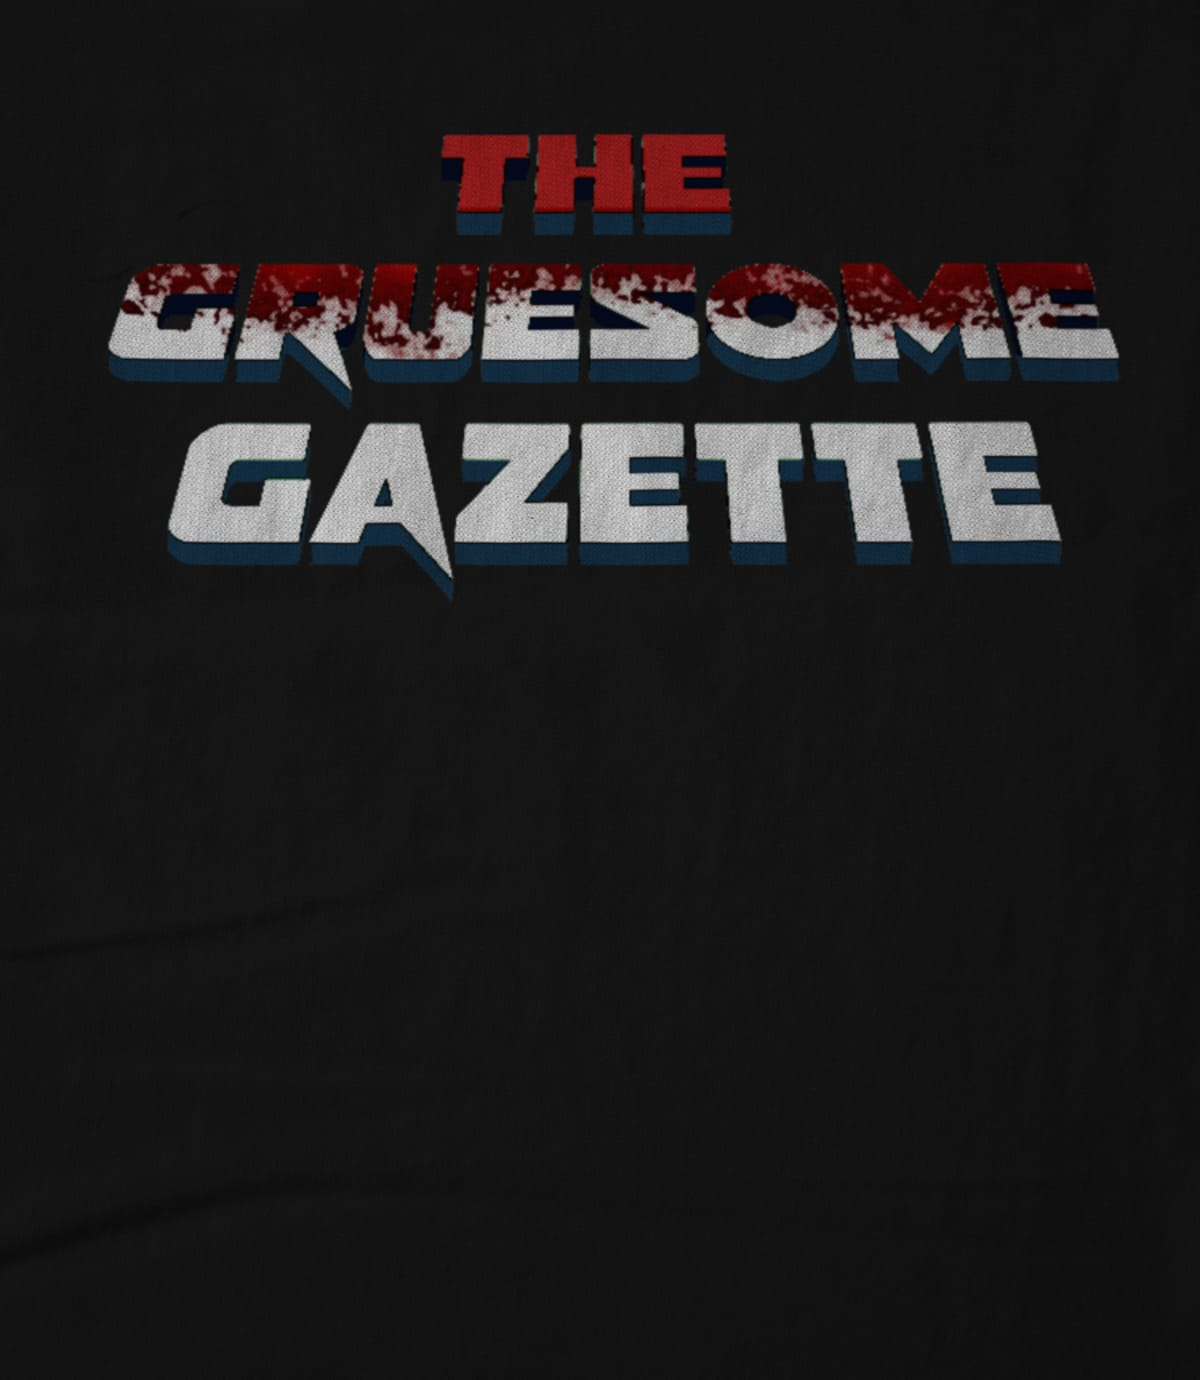 Gruesome Gazette